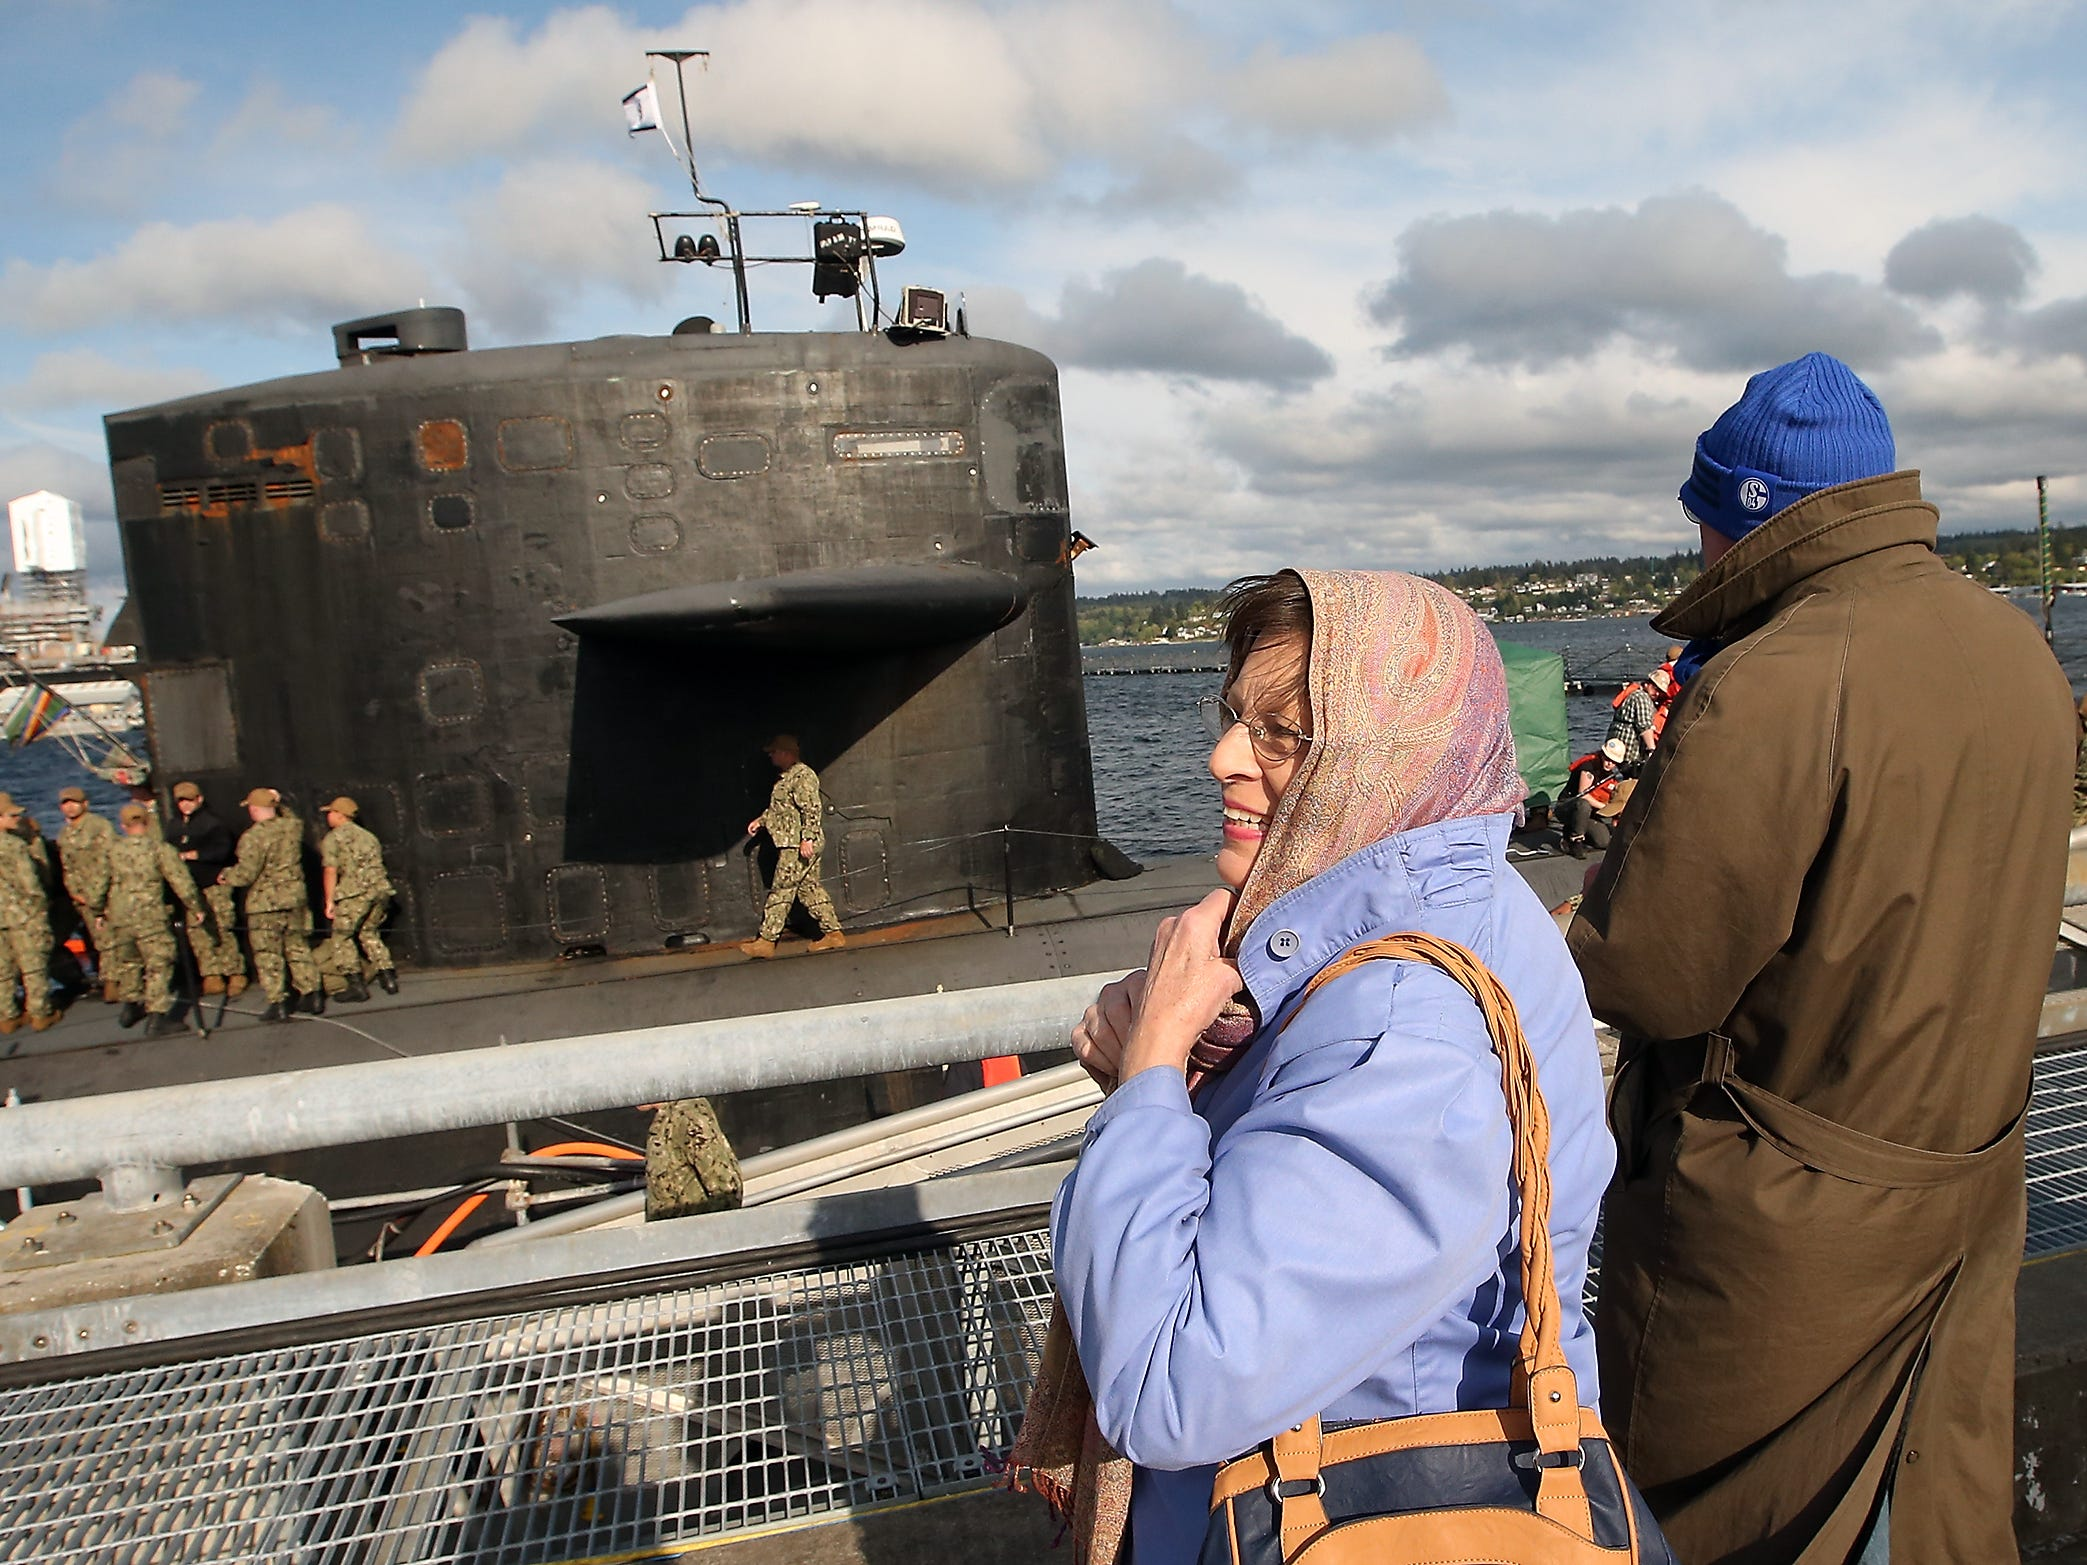 Cynthia Karottki tightens her head scarf against the wind as she and husband Hartmut (right) watch the USS Bremerton for their sailor son Christoph to disembark the submarine at Naval Base Kitsap-Bremerton on Friday, April 27, 2018. The Karottki's traveled all the way from Massachusetts to see their son who was deployed aboard the USS Bremerton for it's last mission before its decommissioning at Puget Sound Naval Shipyard.